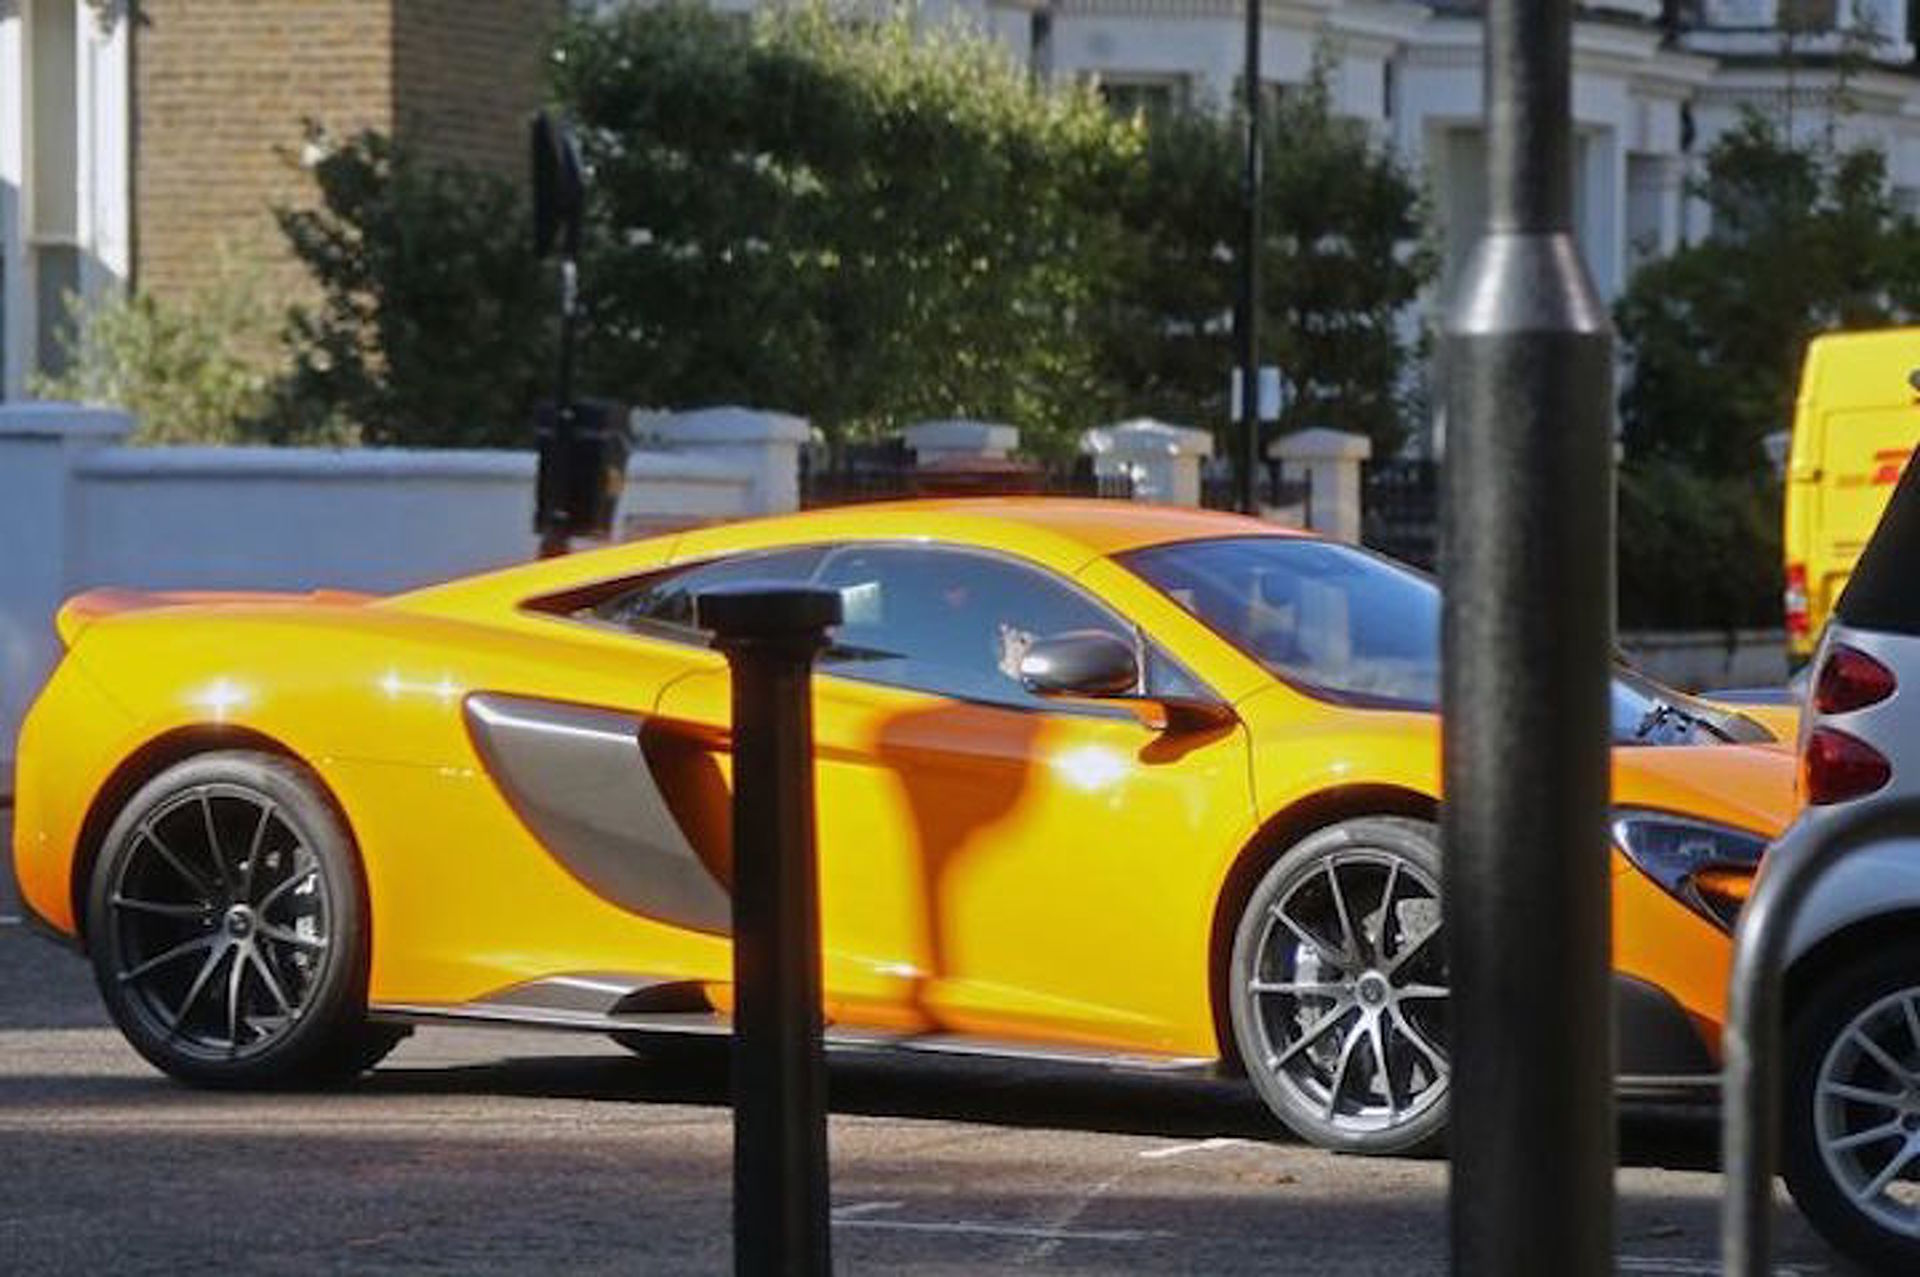 Did Jeremy Clarkson Just Splurge on a $350,000 McLaren?